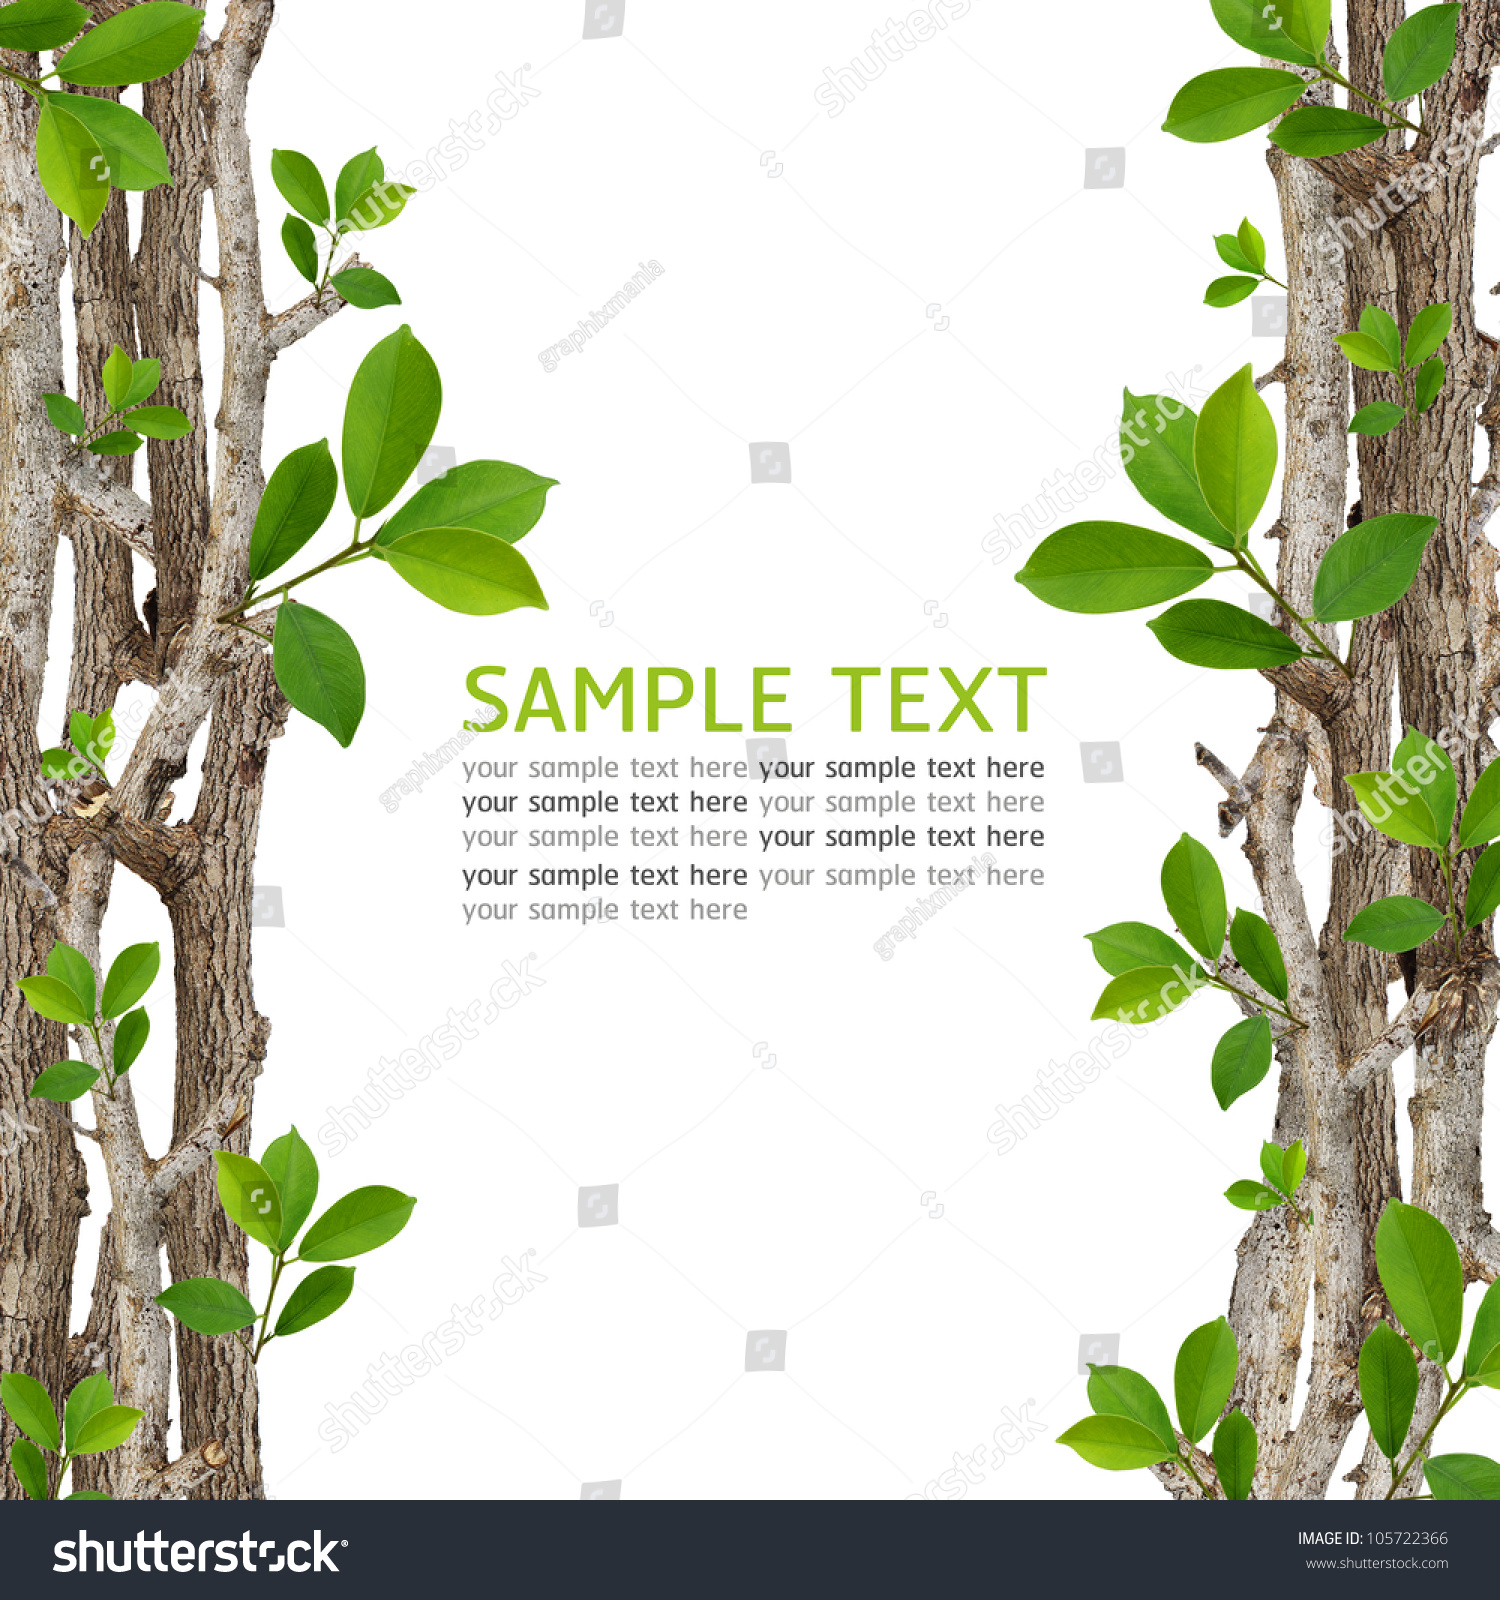 twig and green leaf frame isolated on white background